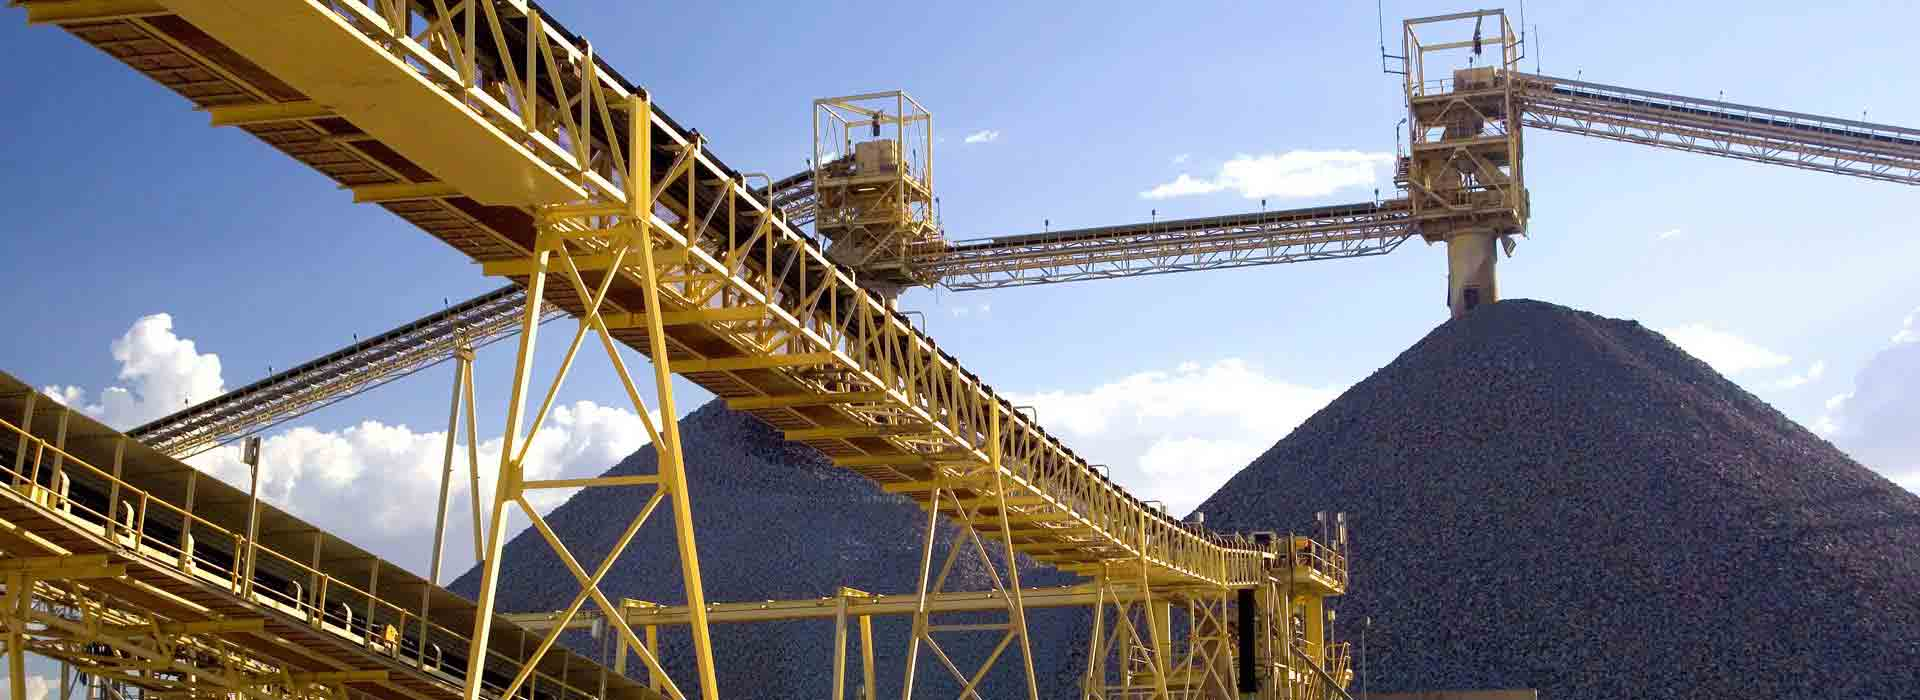 Yellow metal conveyor belt structures in the open air, with two large piles of gravel piled up behind the metal structures